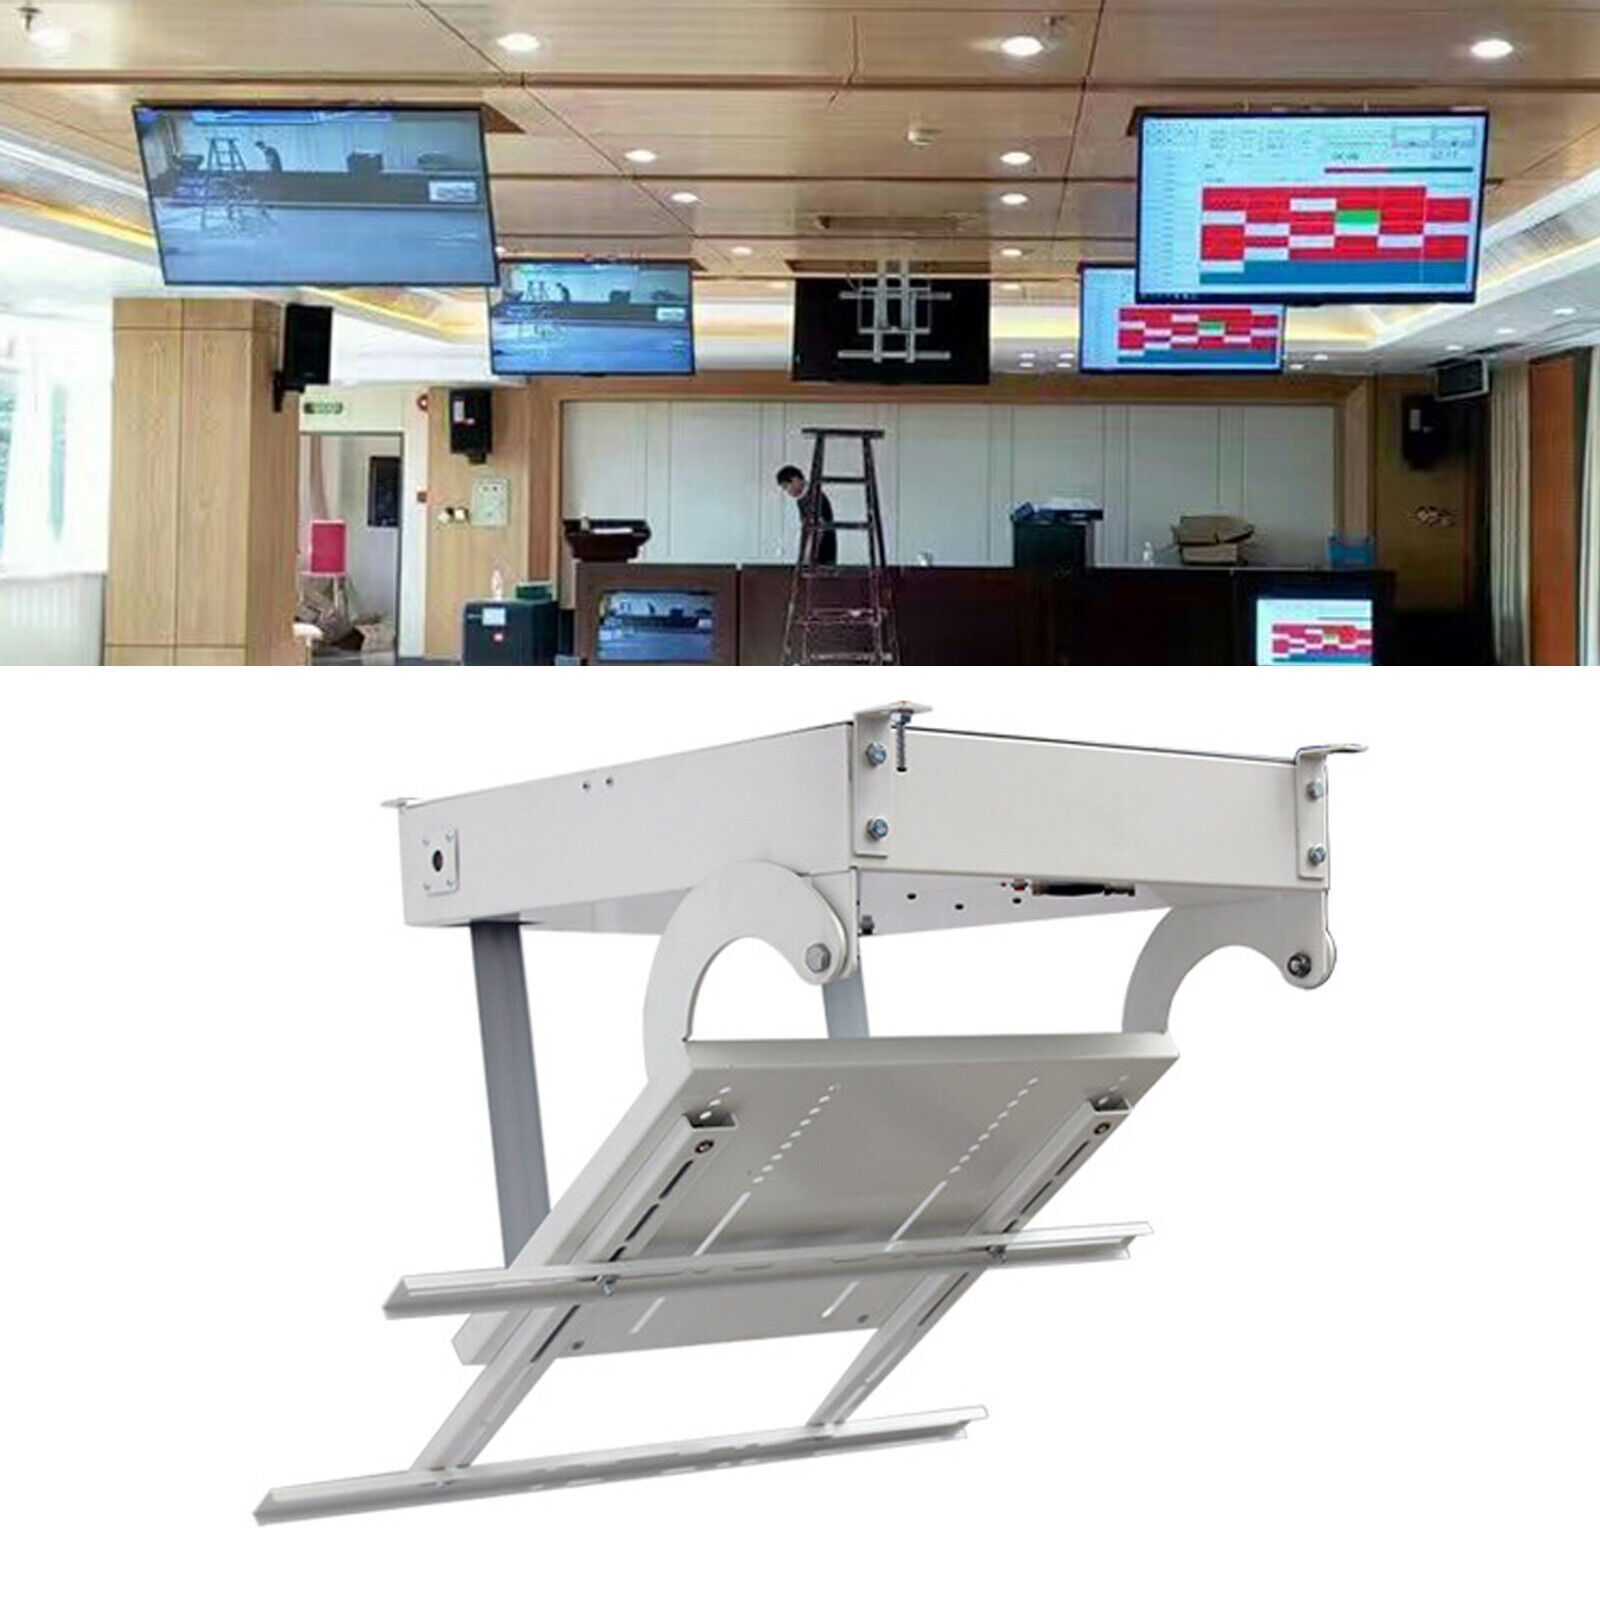 "32""-70"" Adjustable Size TV Ceiling Rack Bracket Electric Hanger Remote Control. Available Now for 435.00"